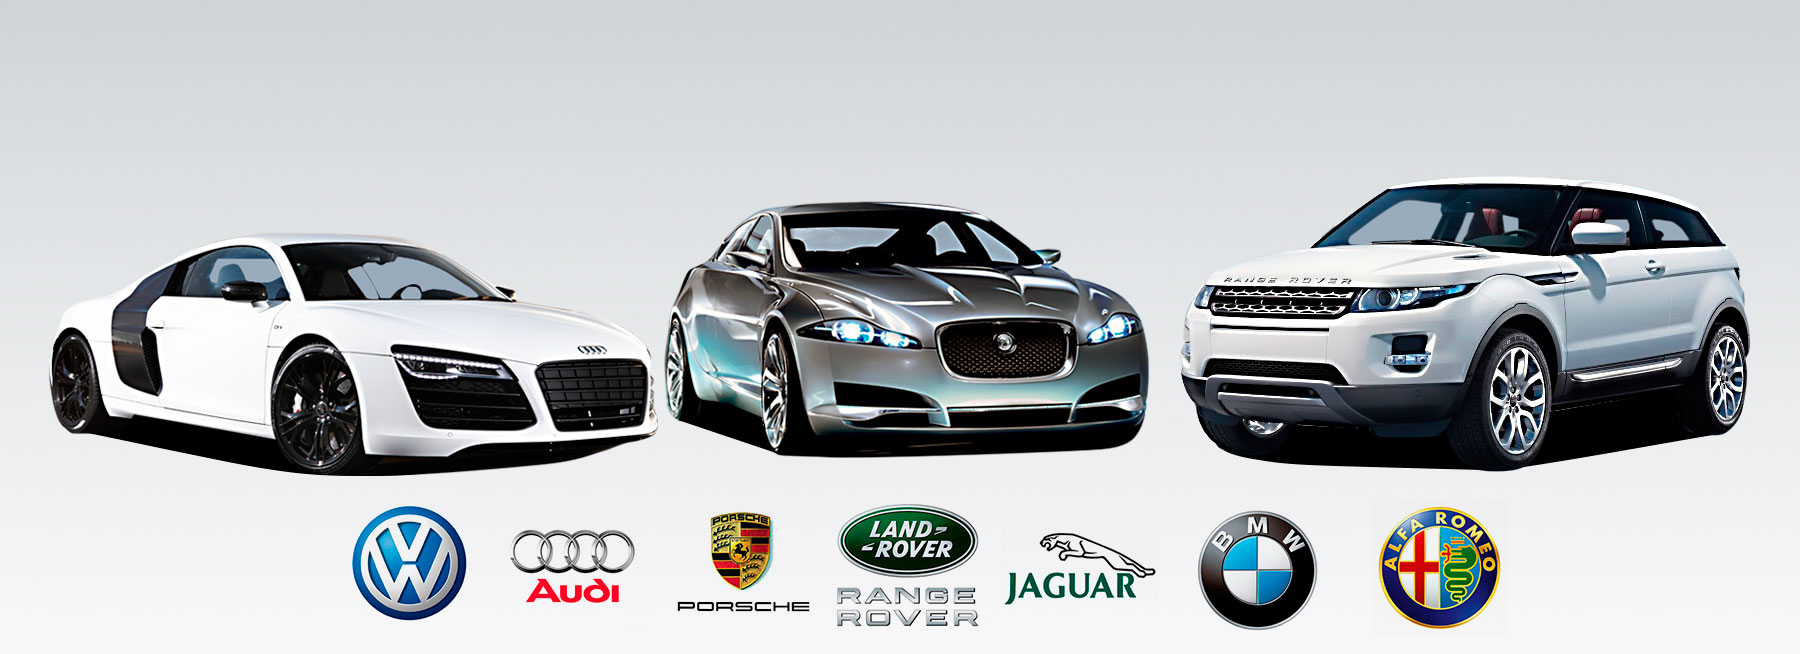 Carisma Cars Services All Makes And Models Of European Cars